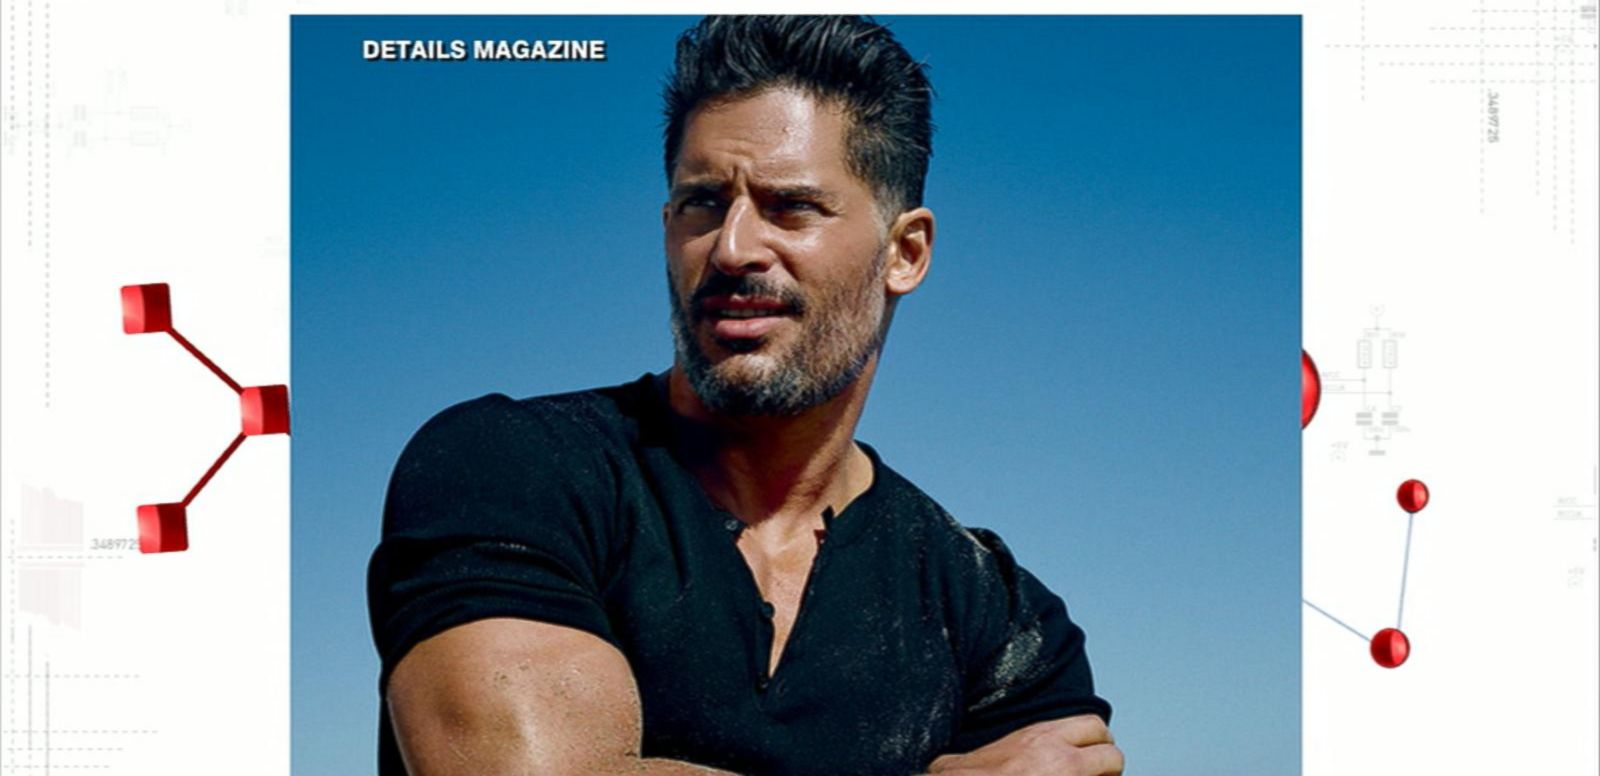 VIDEO: Joe Manganiello Shot 'Magic Mike XXL' With a Torn Bicep